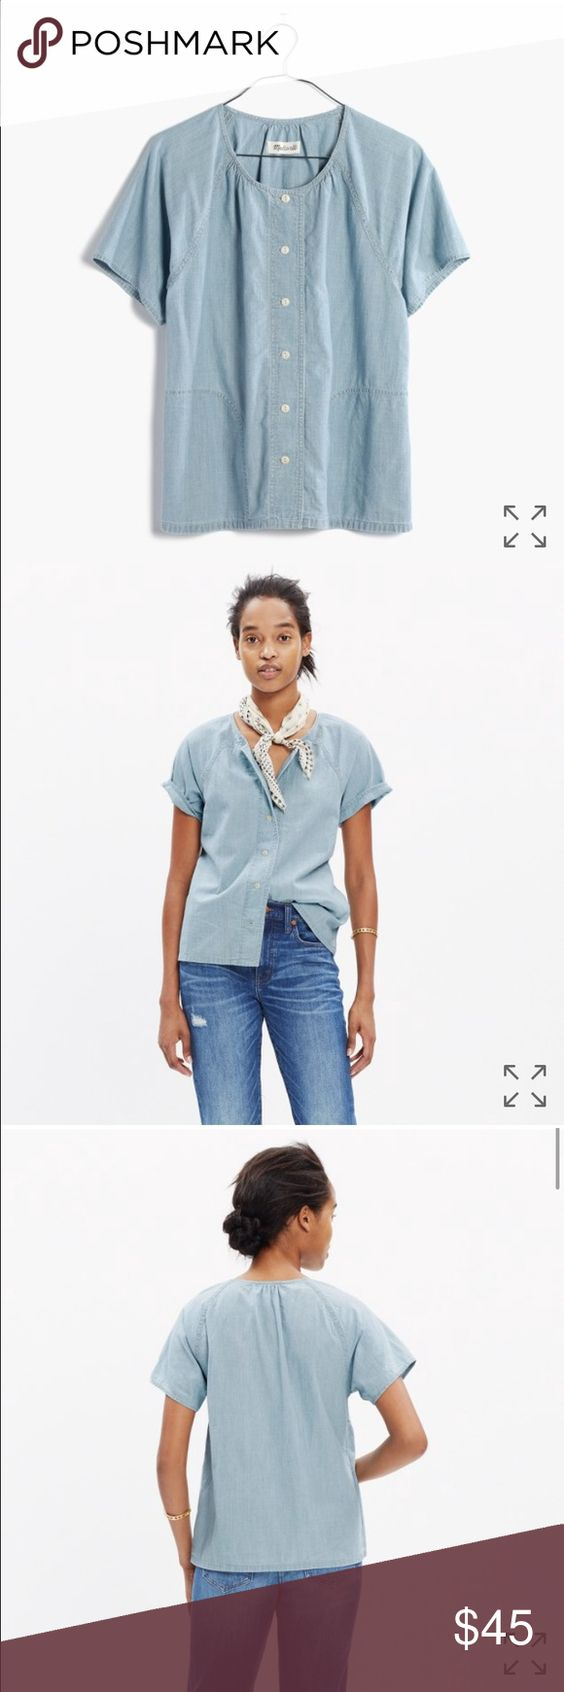 NWOT! Madewell Chambray Raglan Top A lightweight chambray shirt with easy raglan sleeves and (yes!) pockets. The light summery wash looks great with both white and darker denim.    True to size. Cotton. Machine wash. Madewell Tops